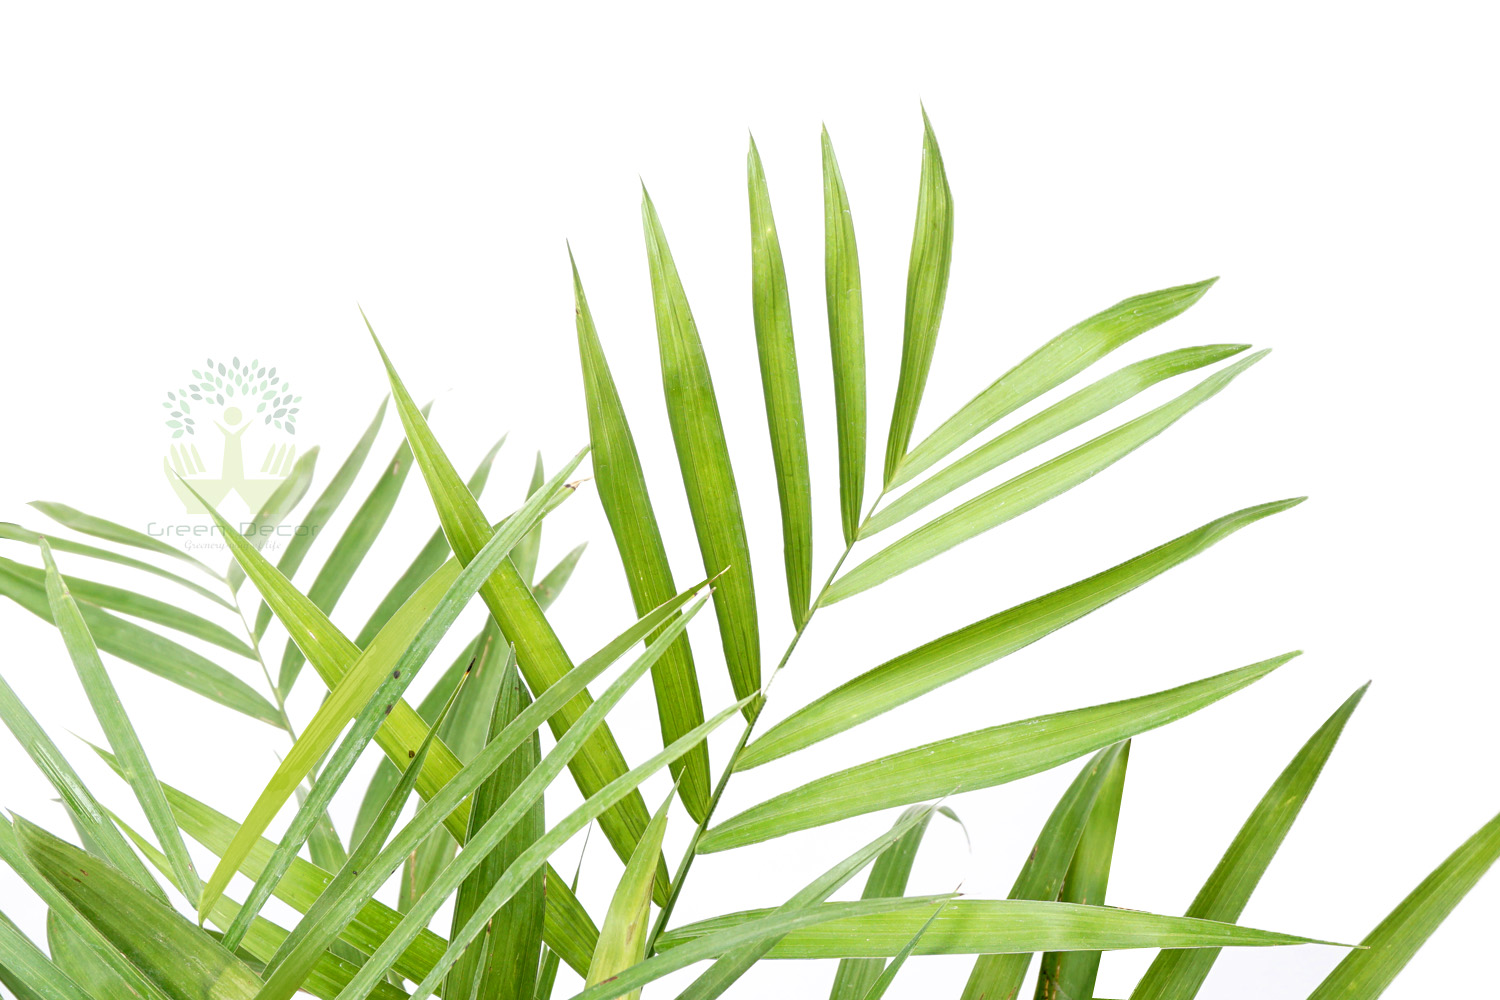 Buy Bamboo Palm Plants Leaves View , White Pots and seeds in Delhi NCR by the best online nursery shop Greendecor.